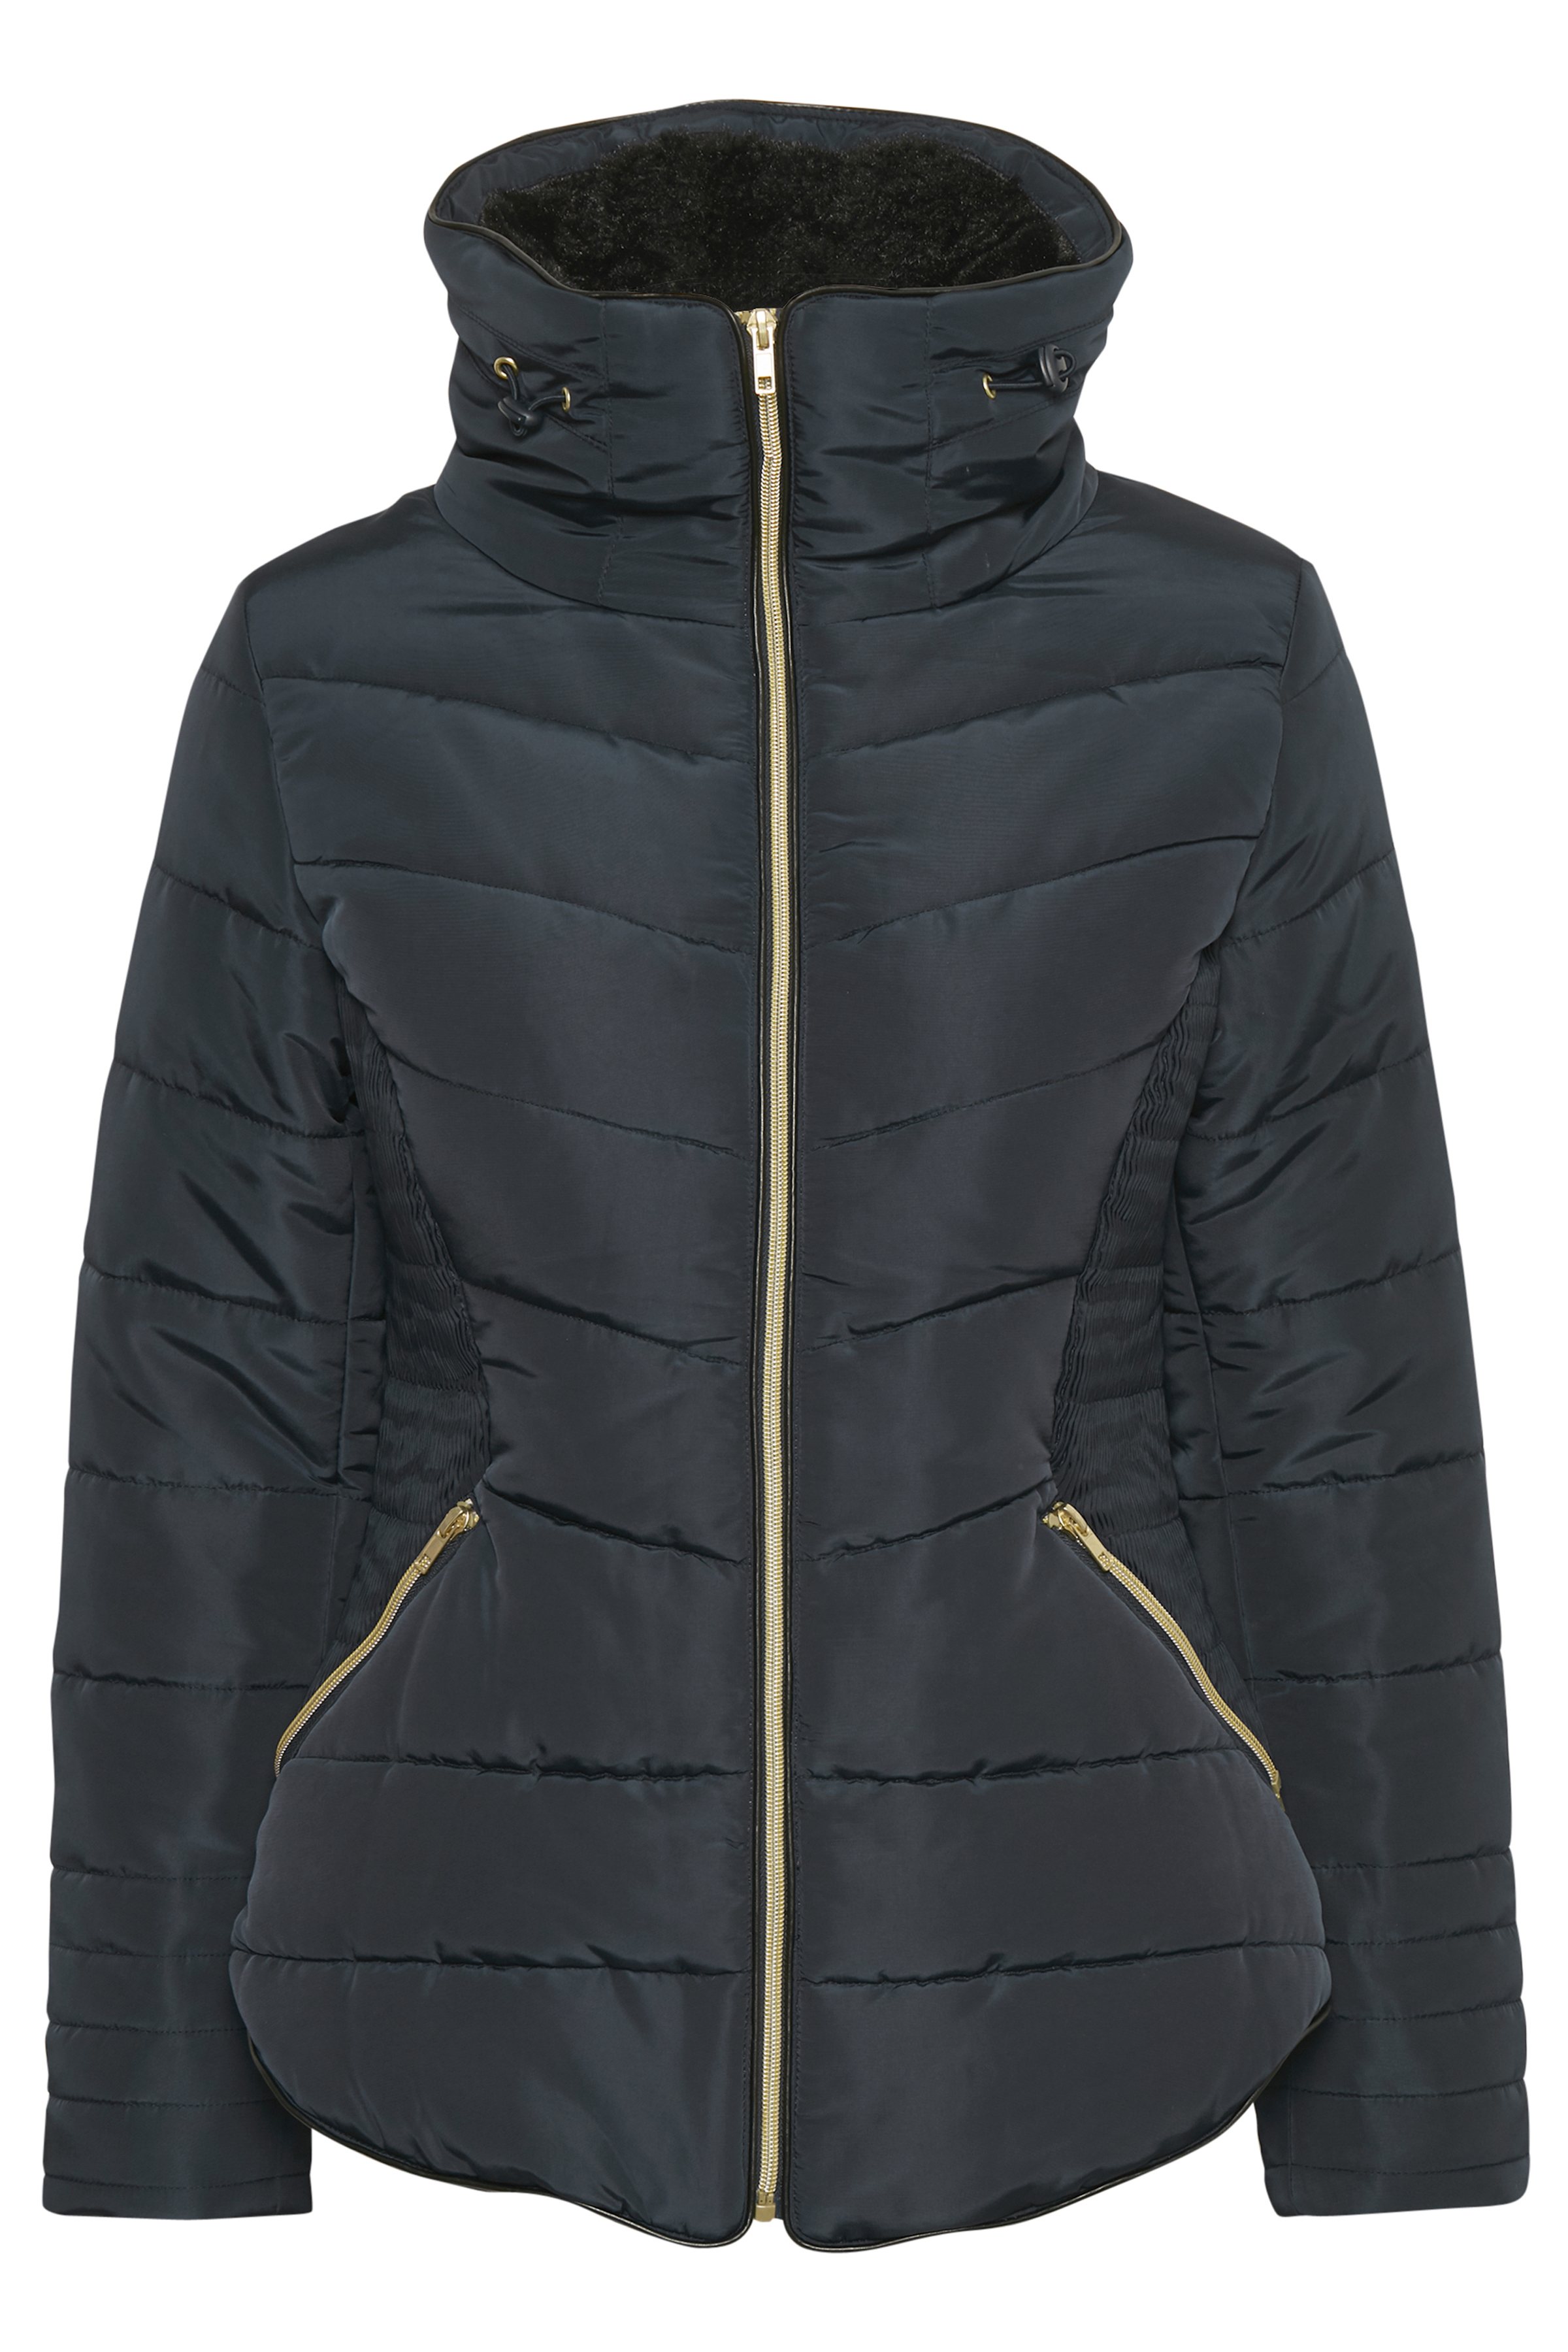 Copenhagen Night Outerwear from b.young – Buy Copenhagen Night Outerwear from size 36-46 here